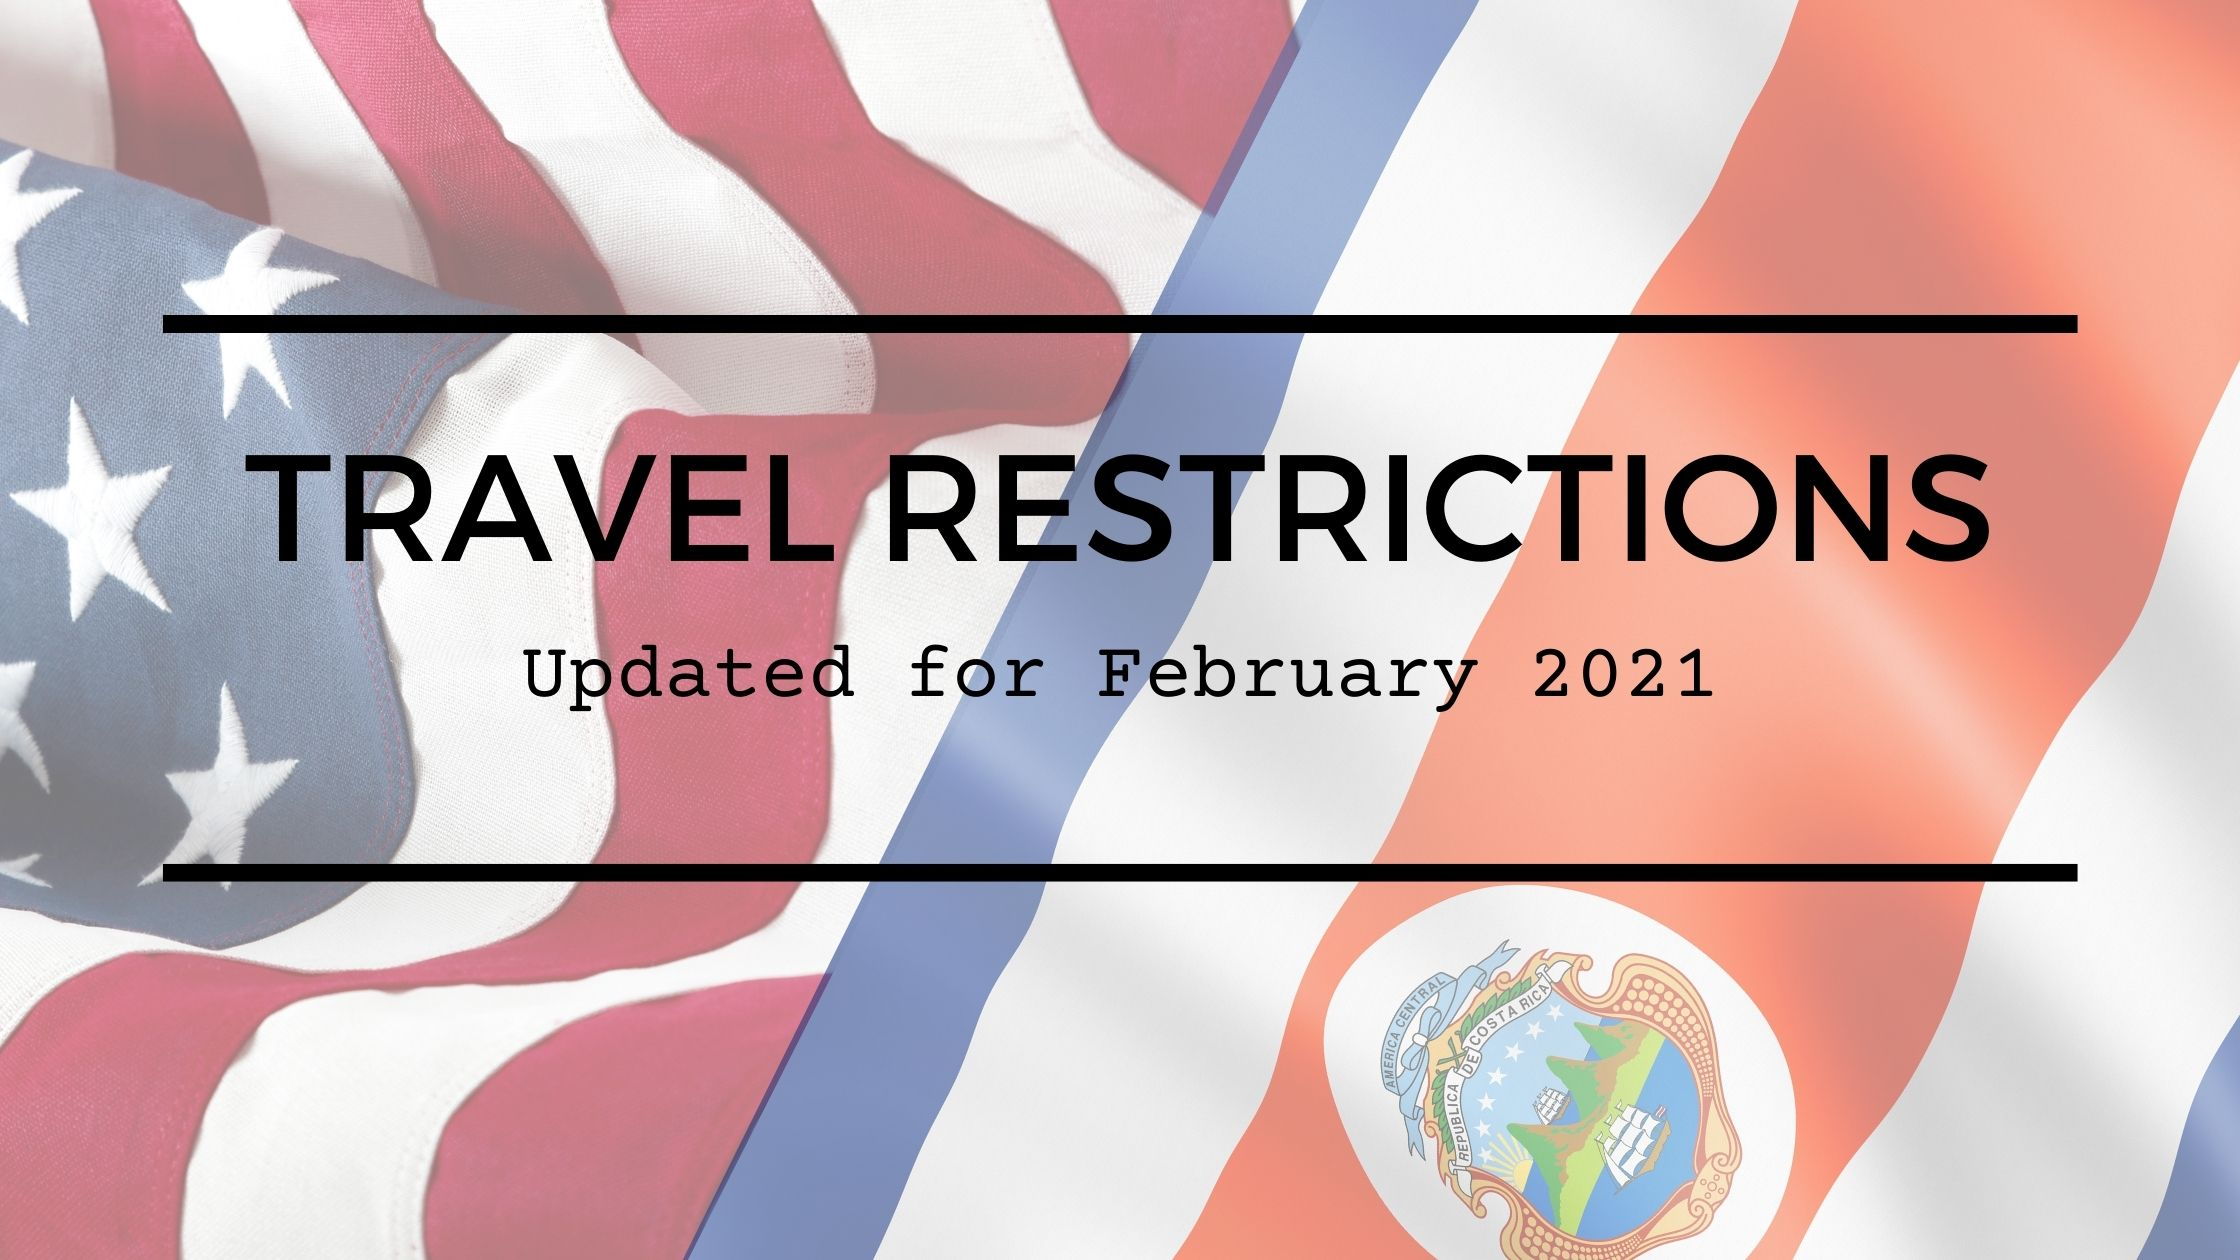 Travel Restrictions Updated February 2021